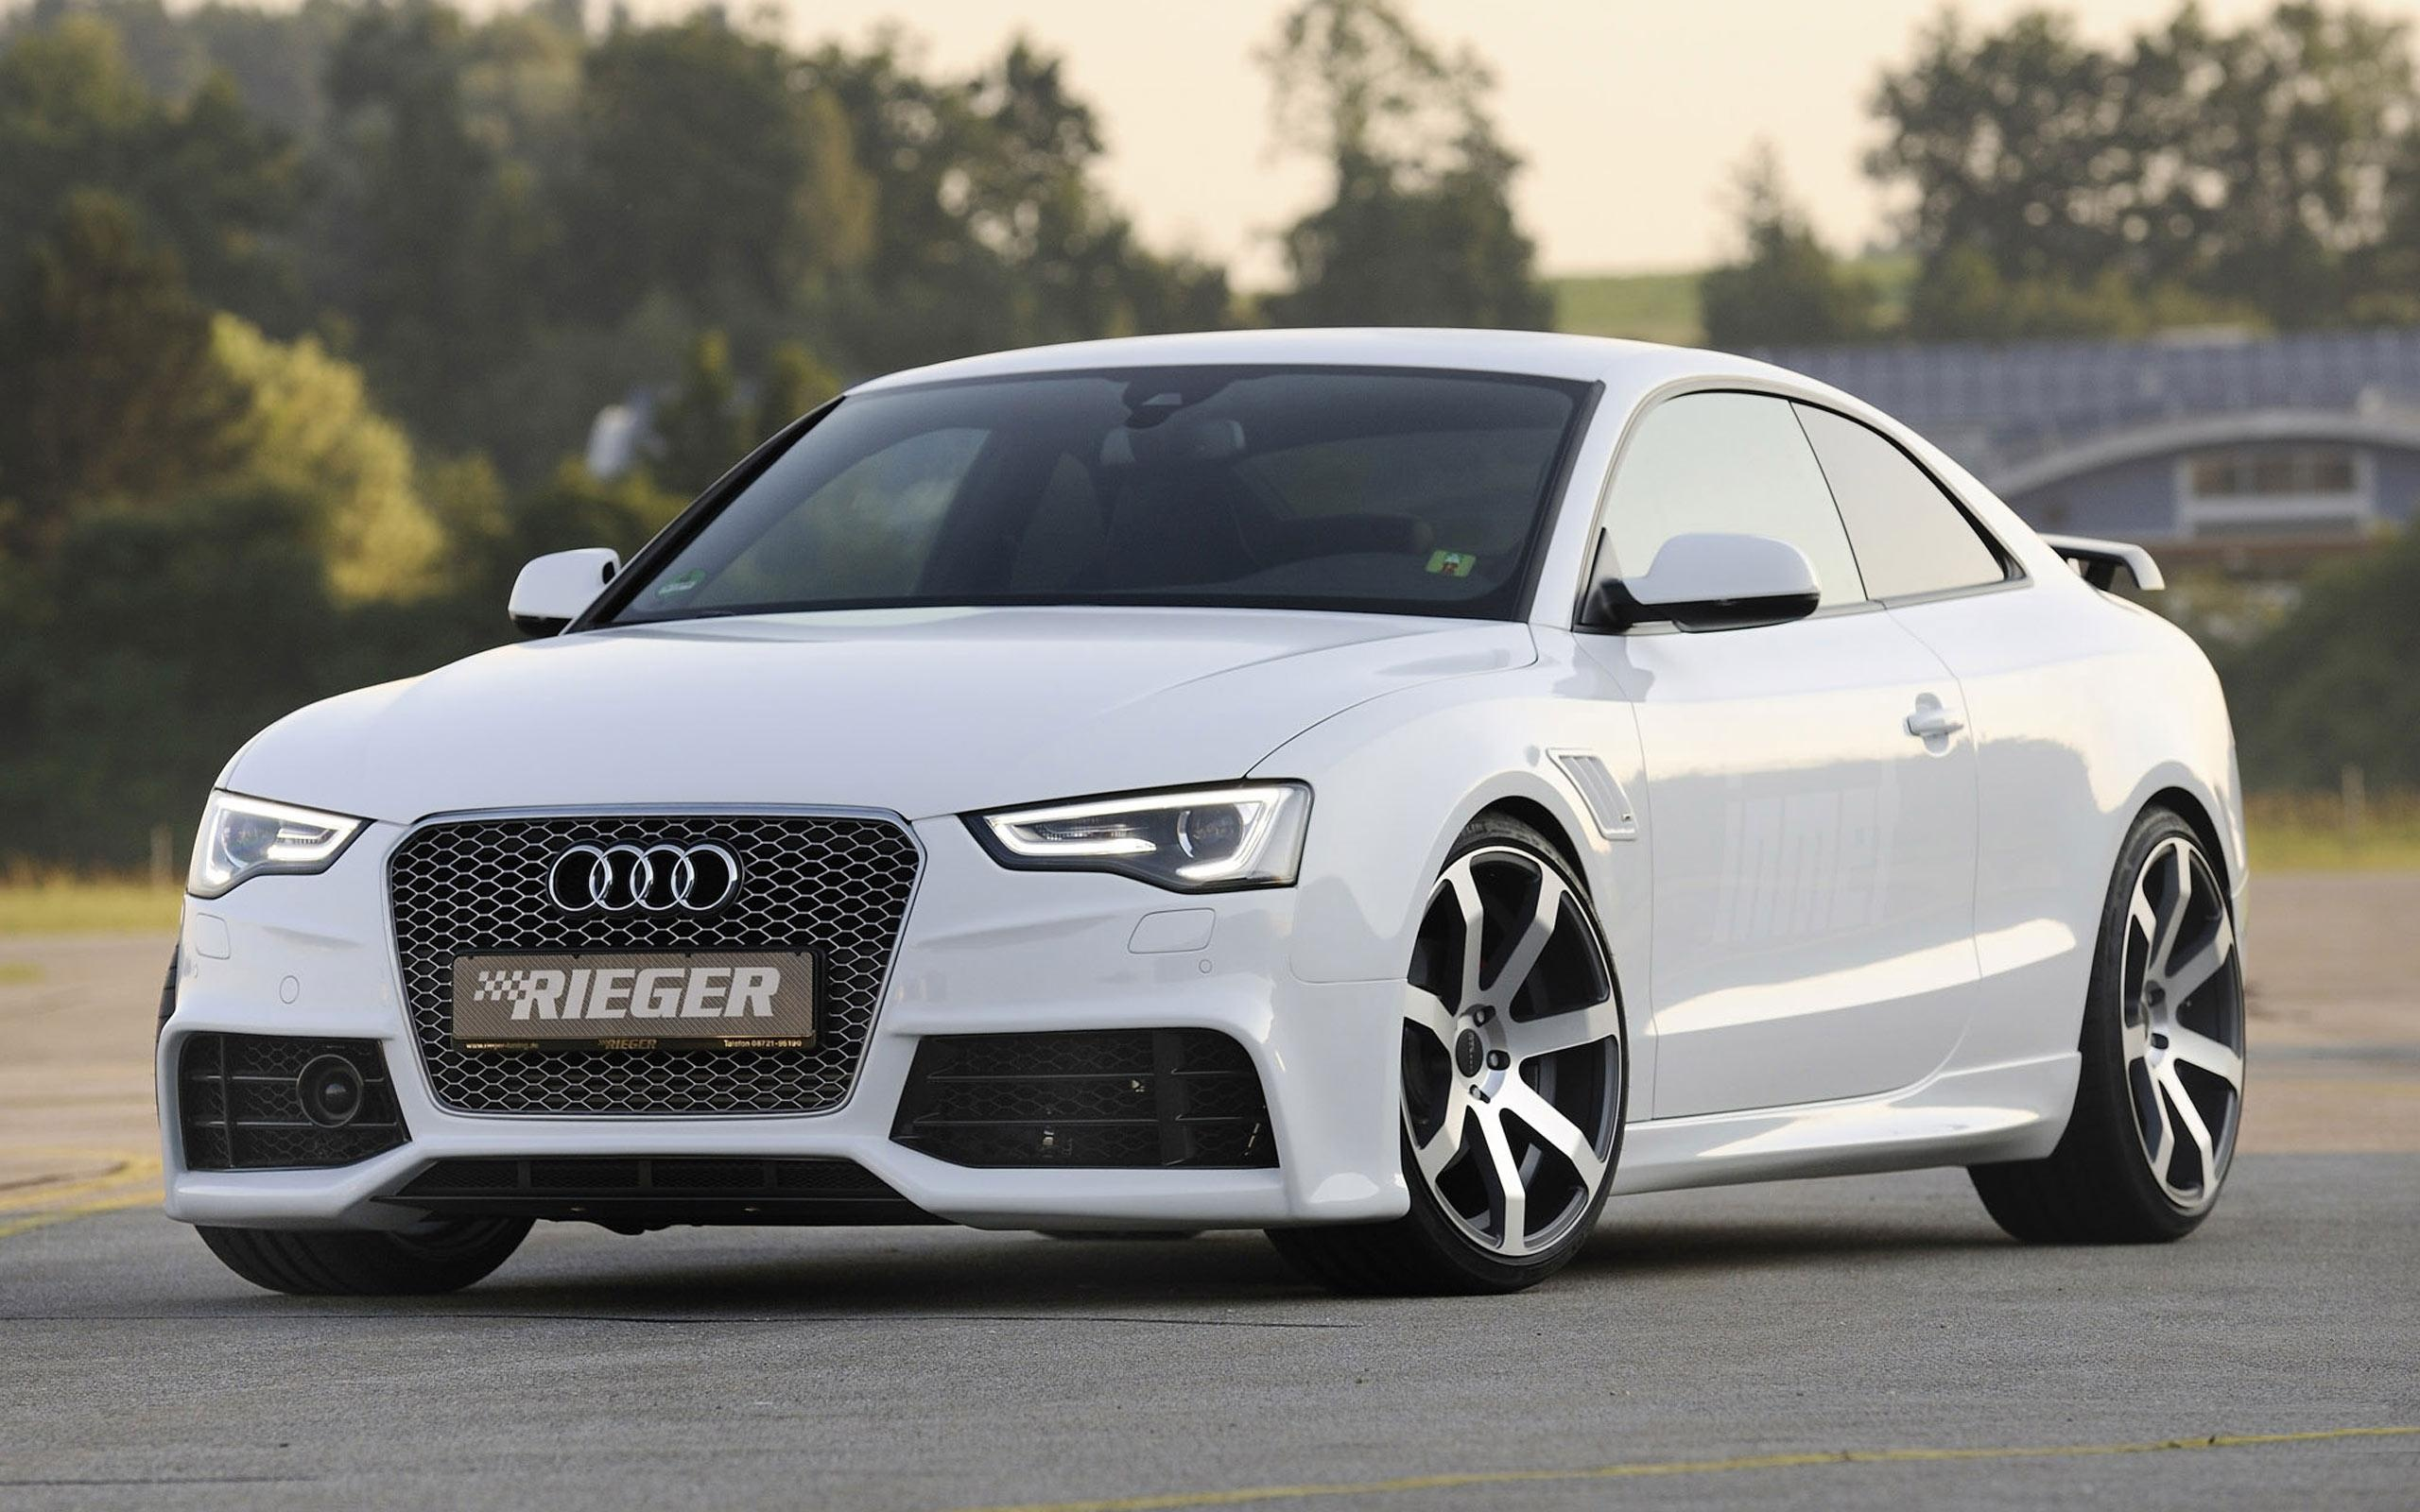 Audi Rieger White Car Wallpapers - 2560x1600 - 737993